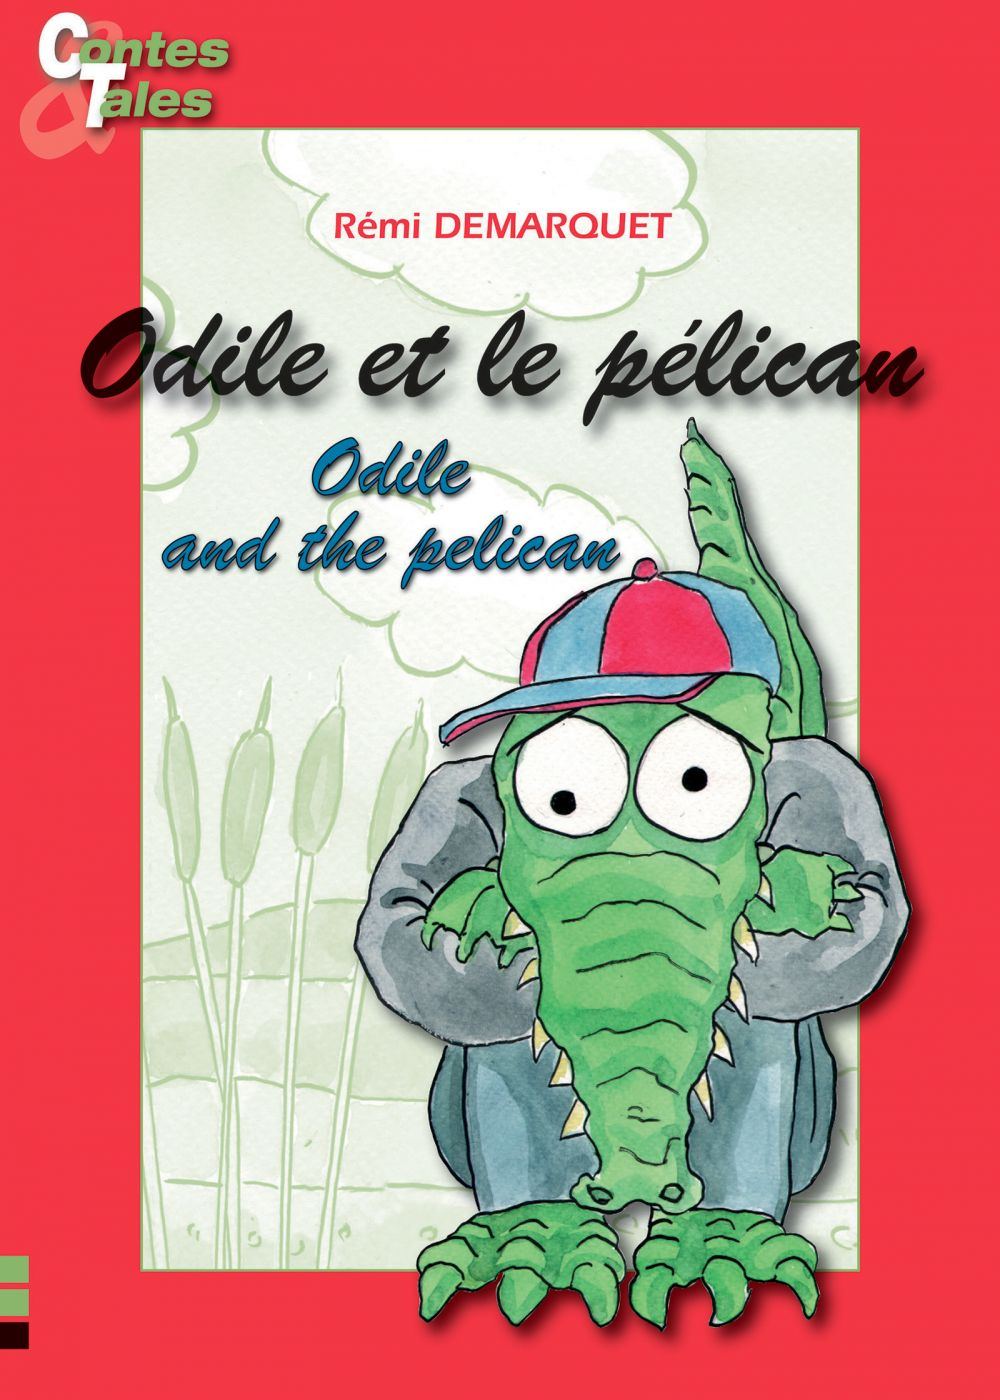 Odile et le pélican/Odile and the pelican